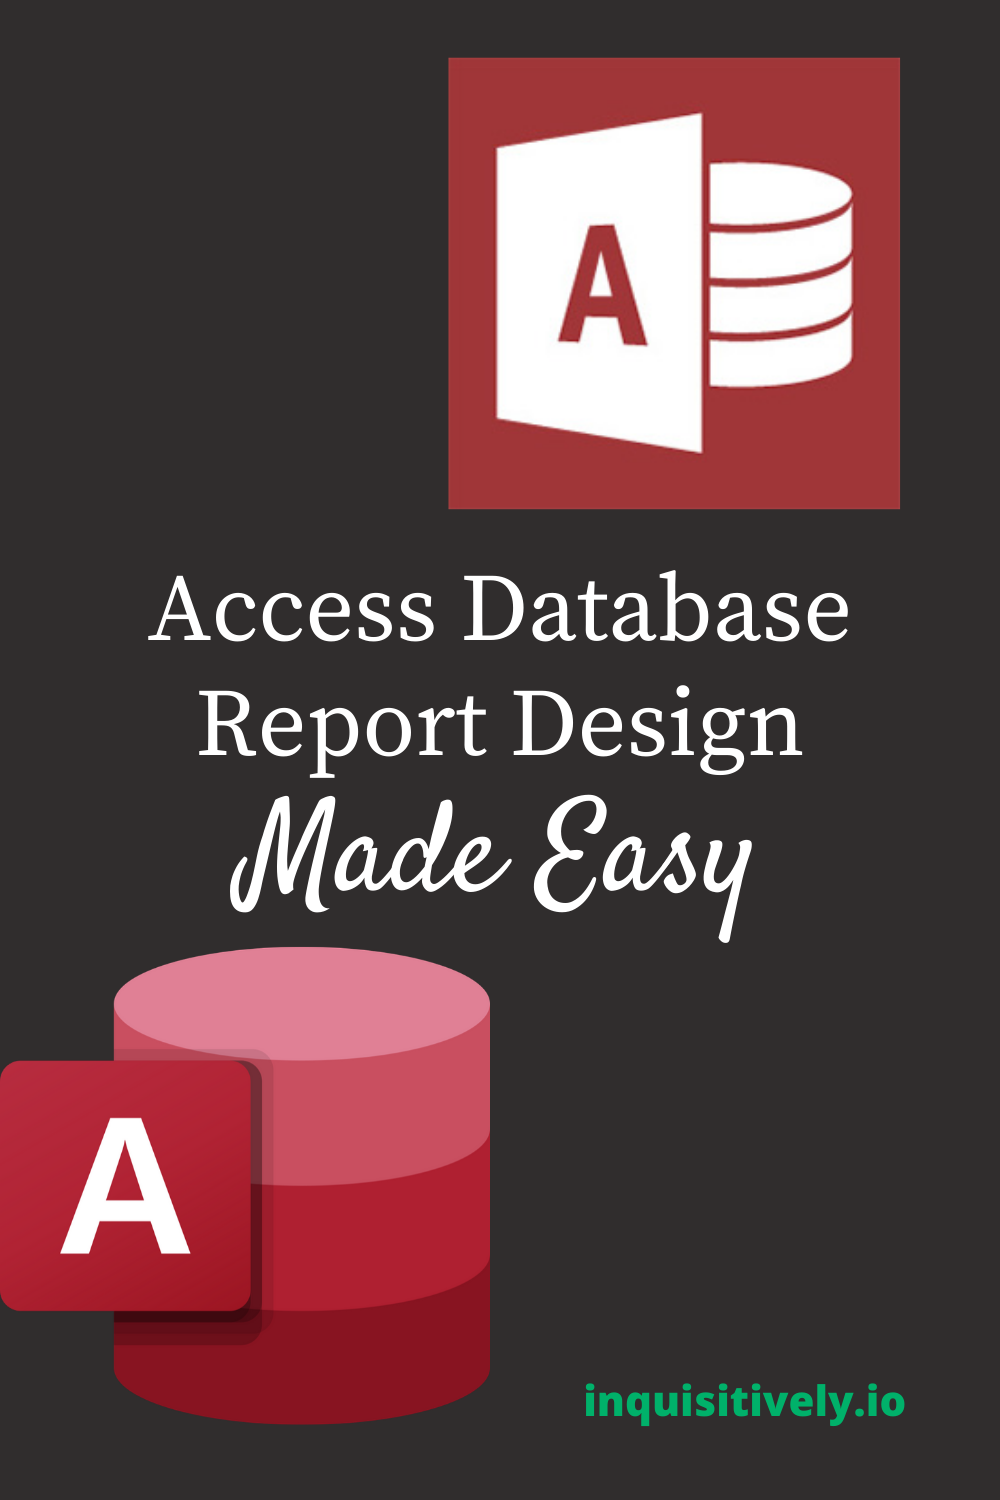 Learn to design access database reports like a